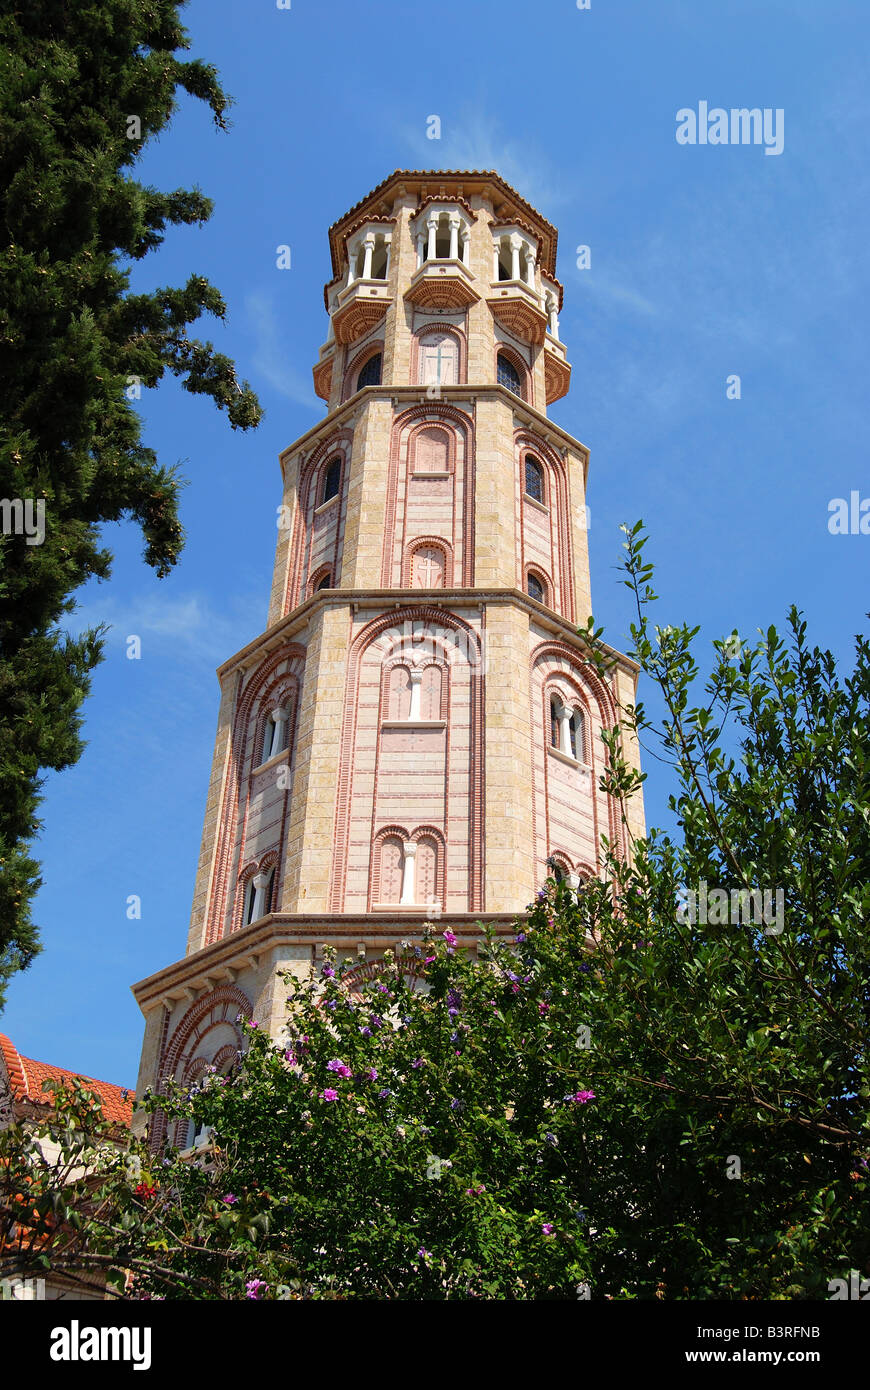 Trion Ierarchon Greek Orthodox Church bell tower, Thessaloniki, Chalkidiki, Central Macedonia, Greece Stock Photo